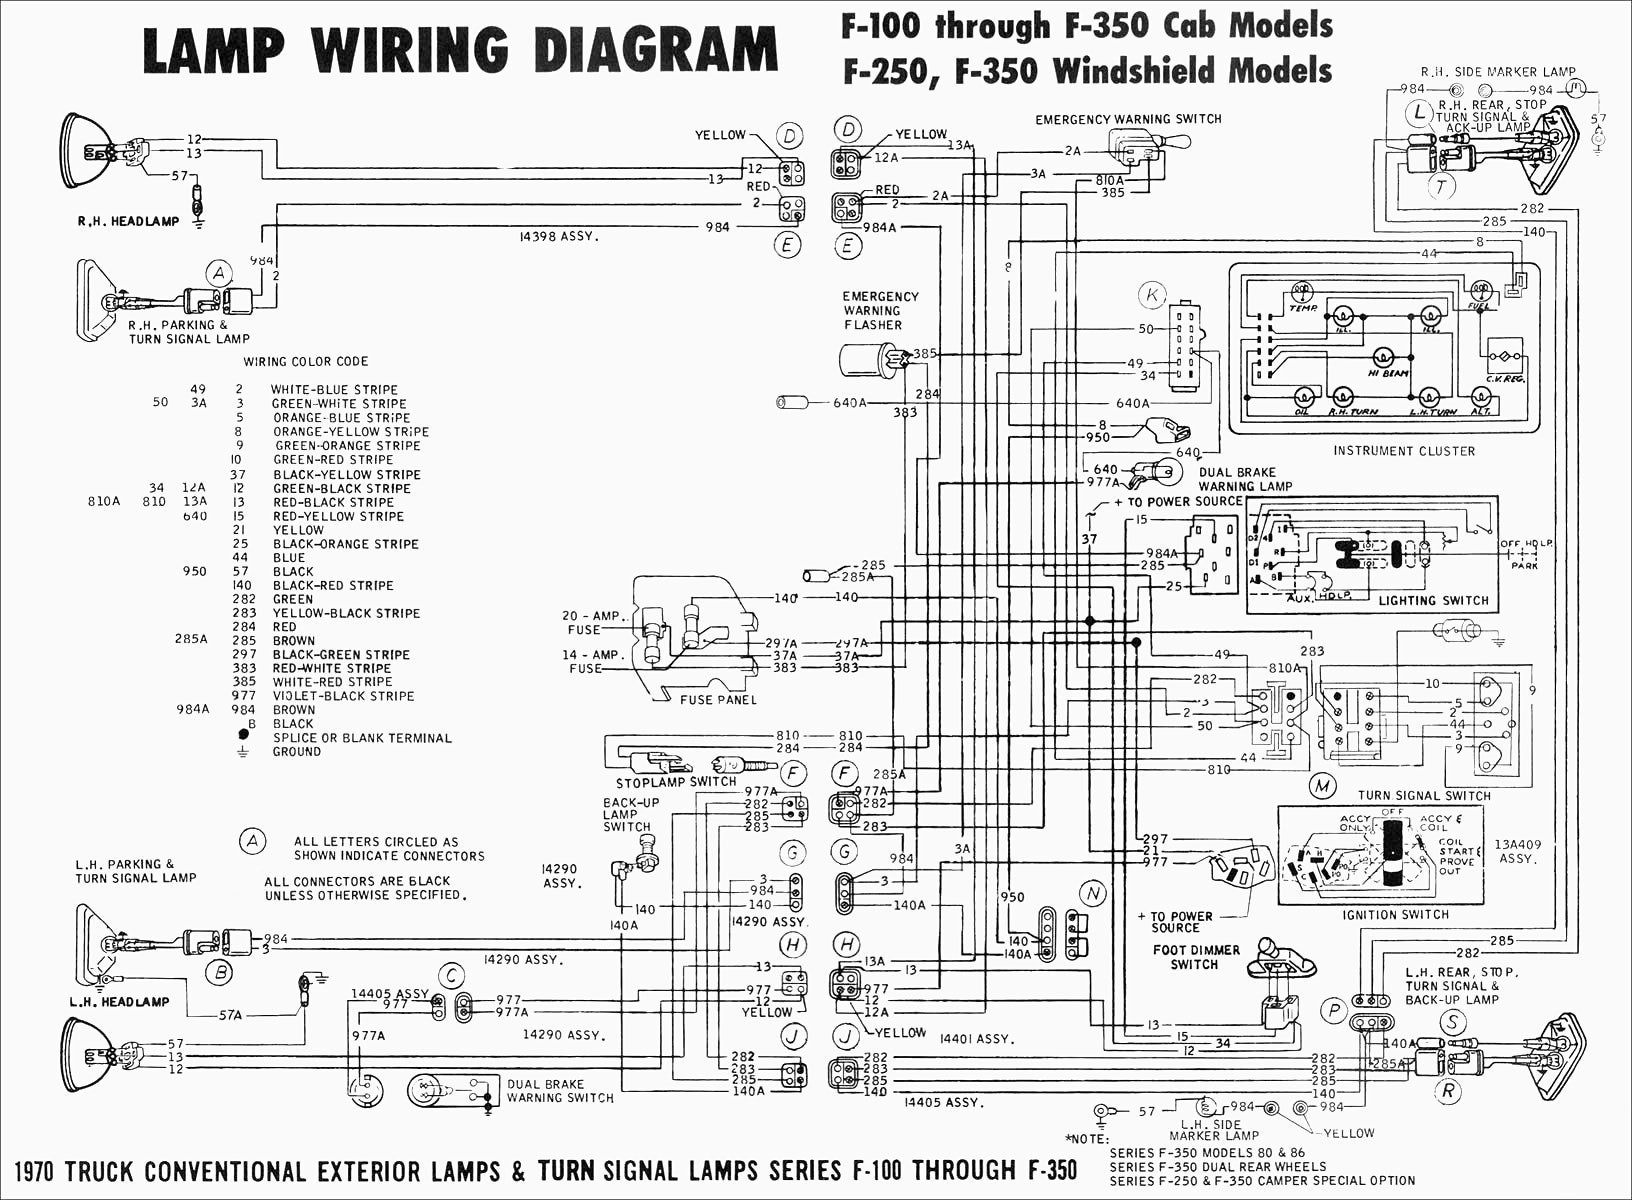 1997 Jeep Grand Cherokee Laredo Fuse Diagram Trusted Wiring